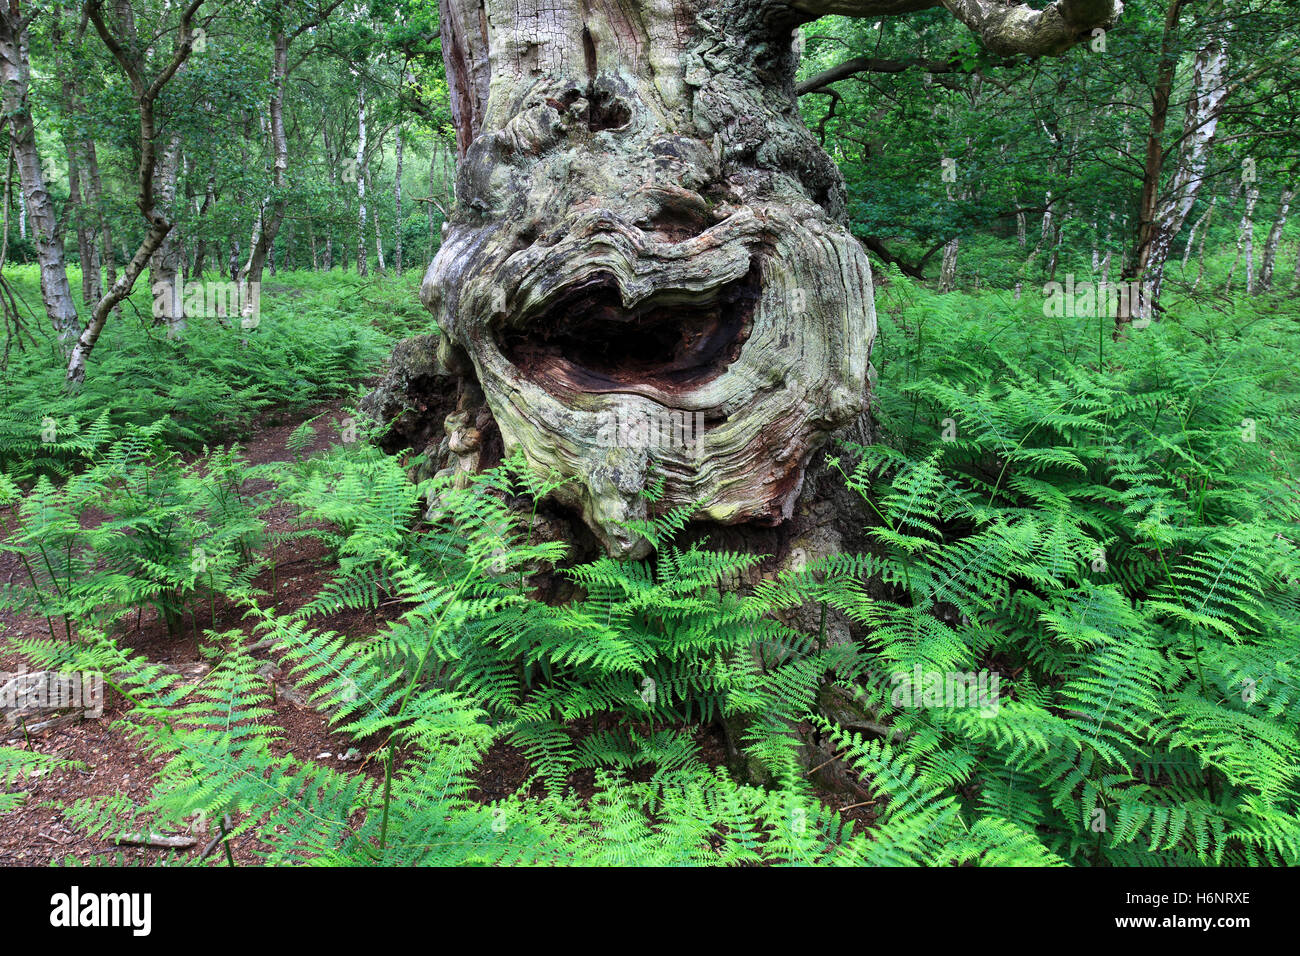 English Oak Tree with a face on it, (Quercus robur) in Sherwood Forest SSSI, Nottinghamshire, England, Britain, Stock Photo